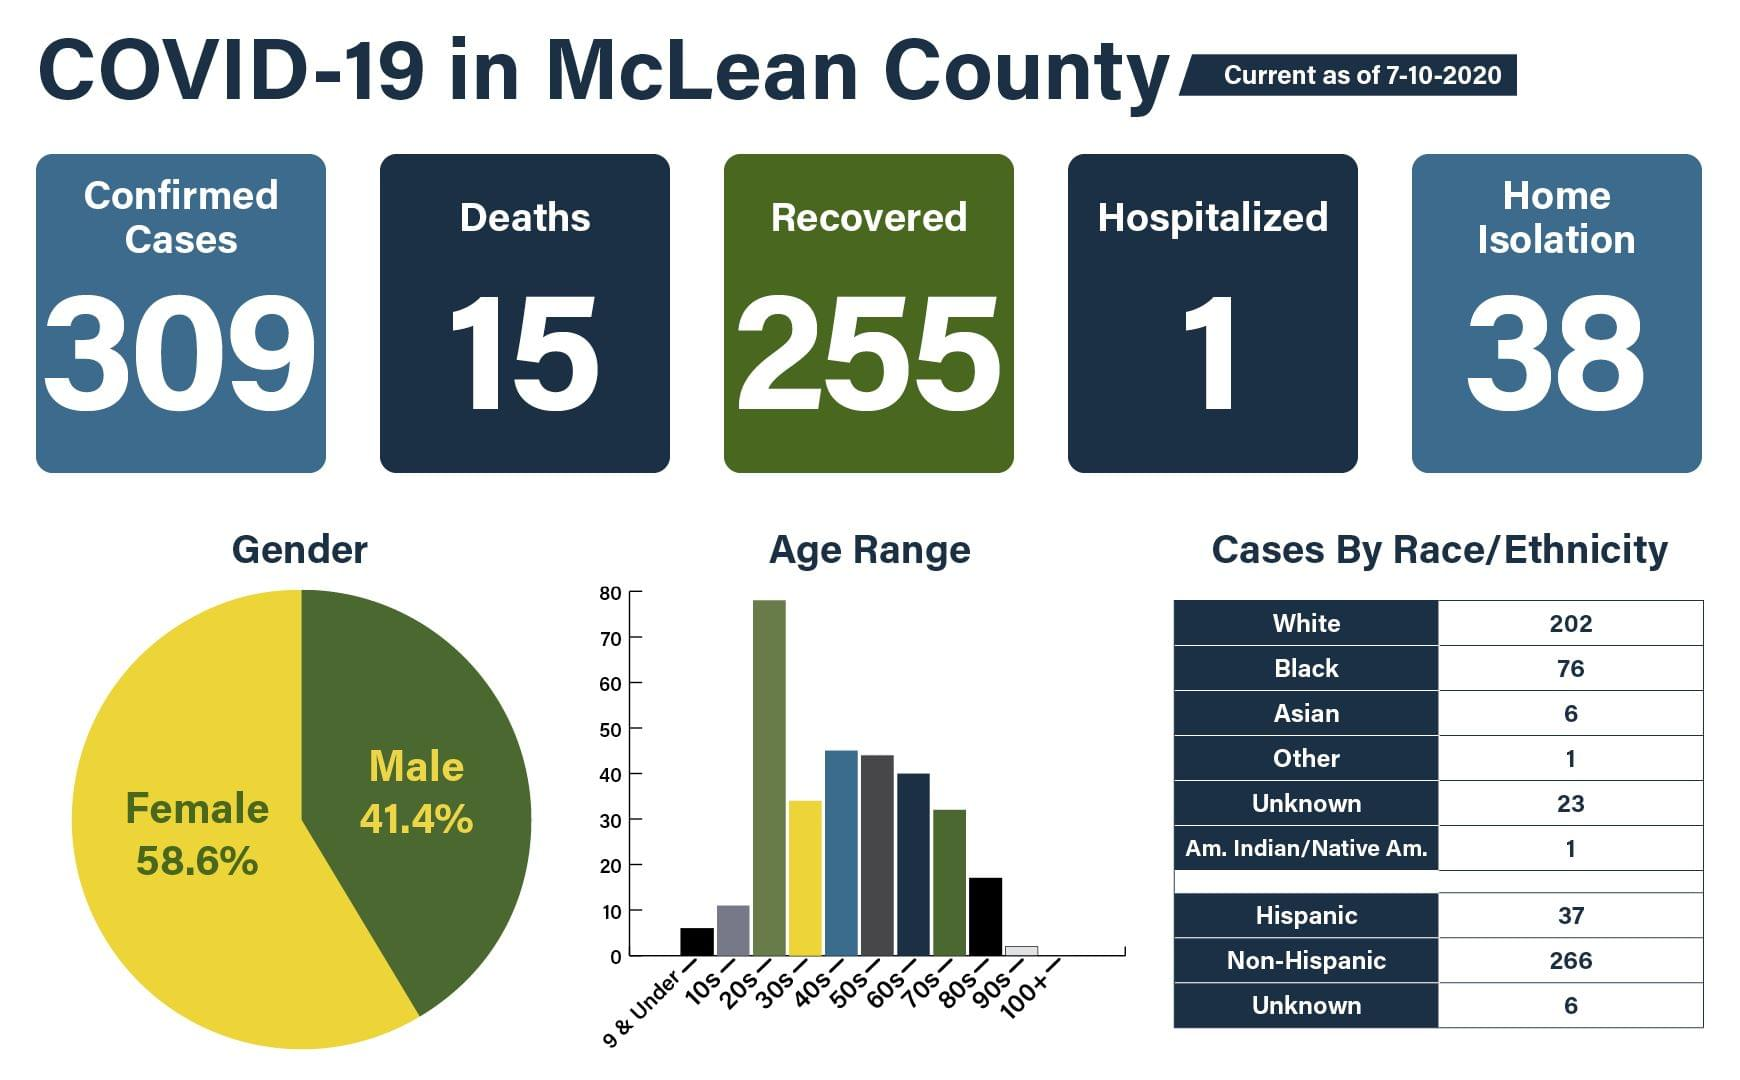 MCHD announces 10 new COVID-19 cases; county total over 300 cases